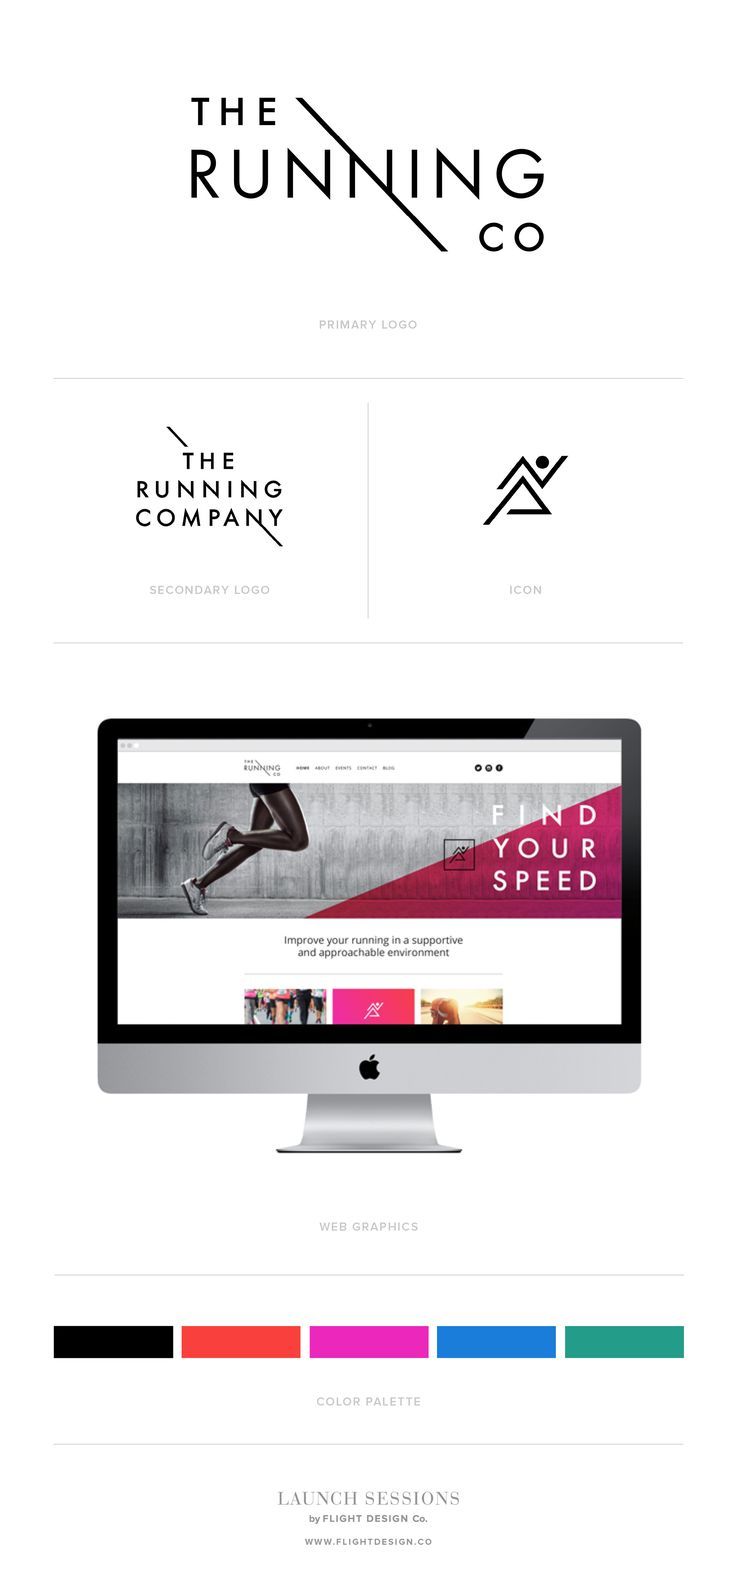 The Running Company | Logo, Branding & Style Guide by Launch Sessions of Flight Design Co.